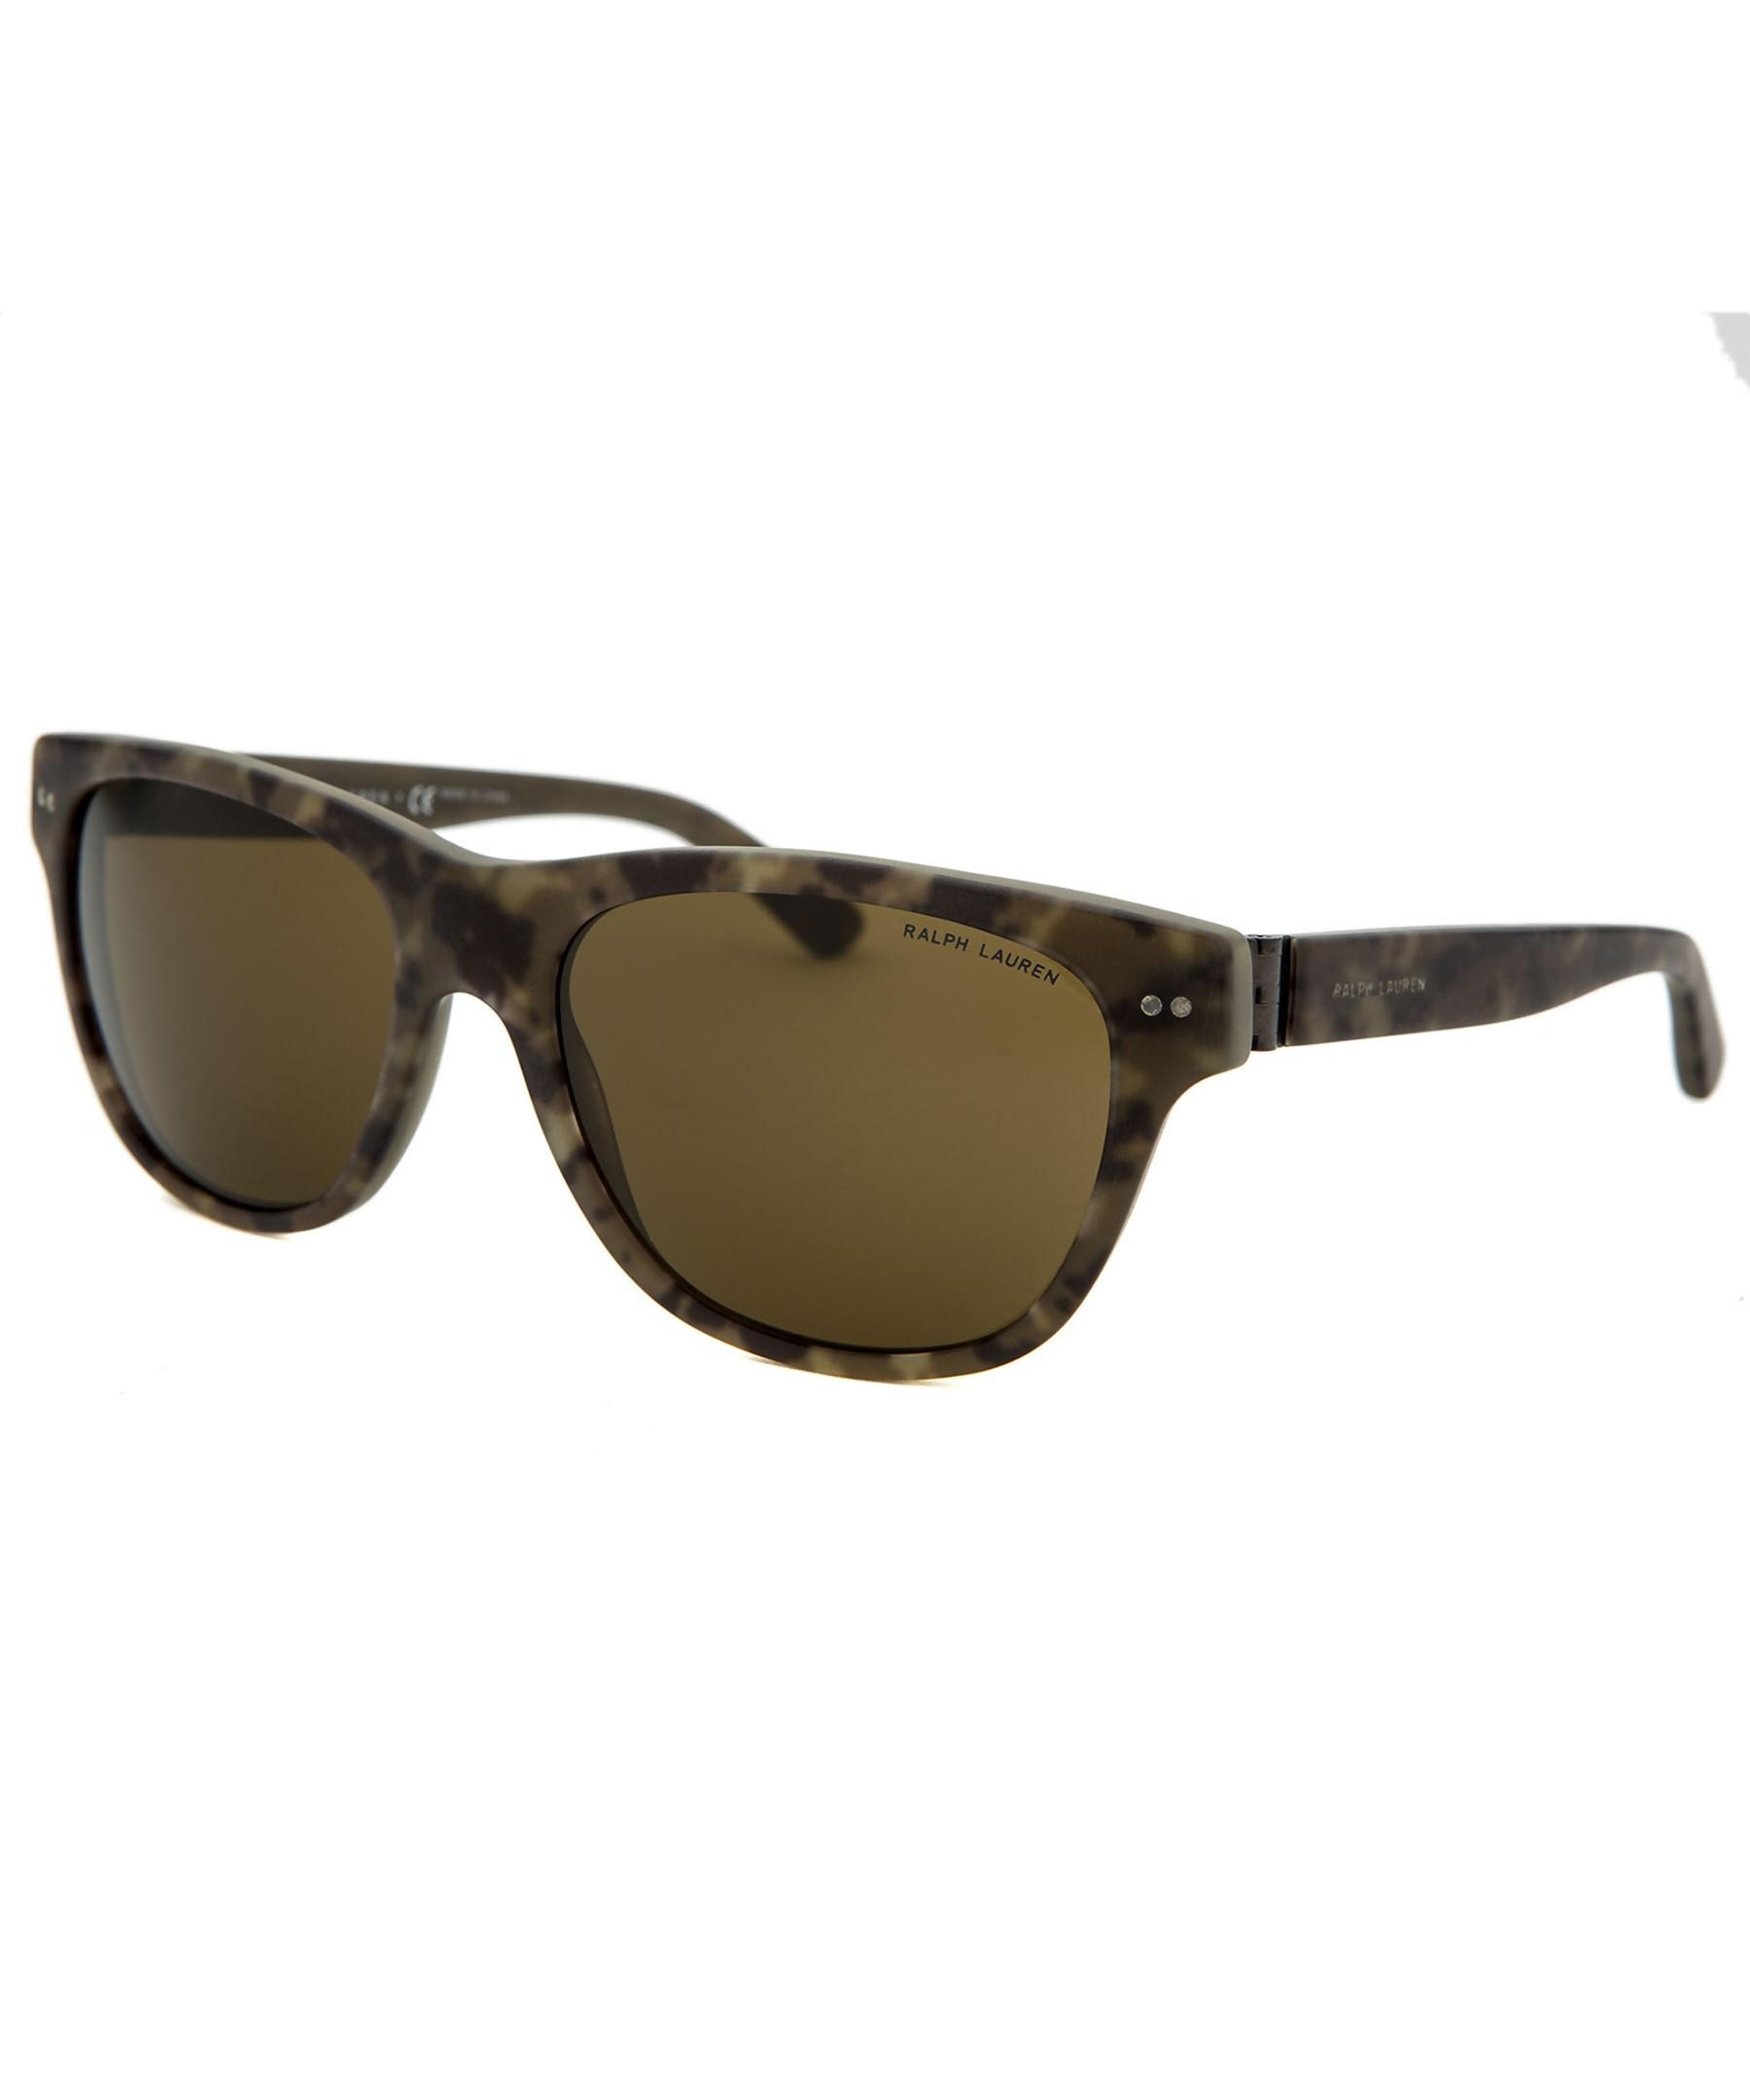 Polo ralph lauren Men's Square Camo Sunglasses for Men